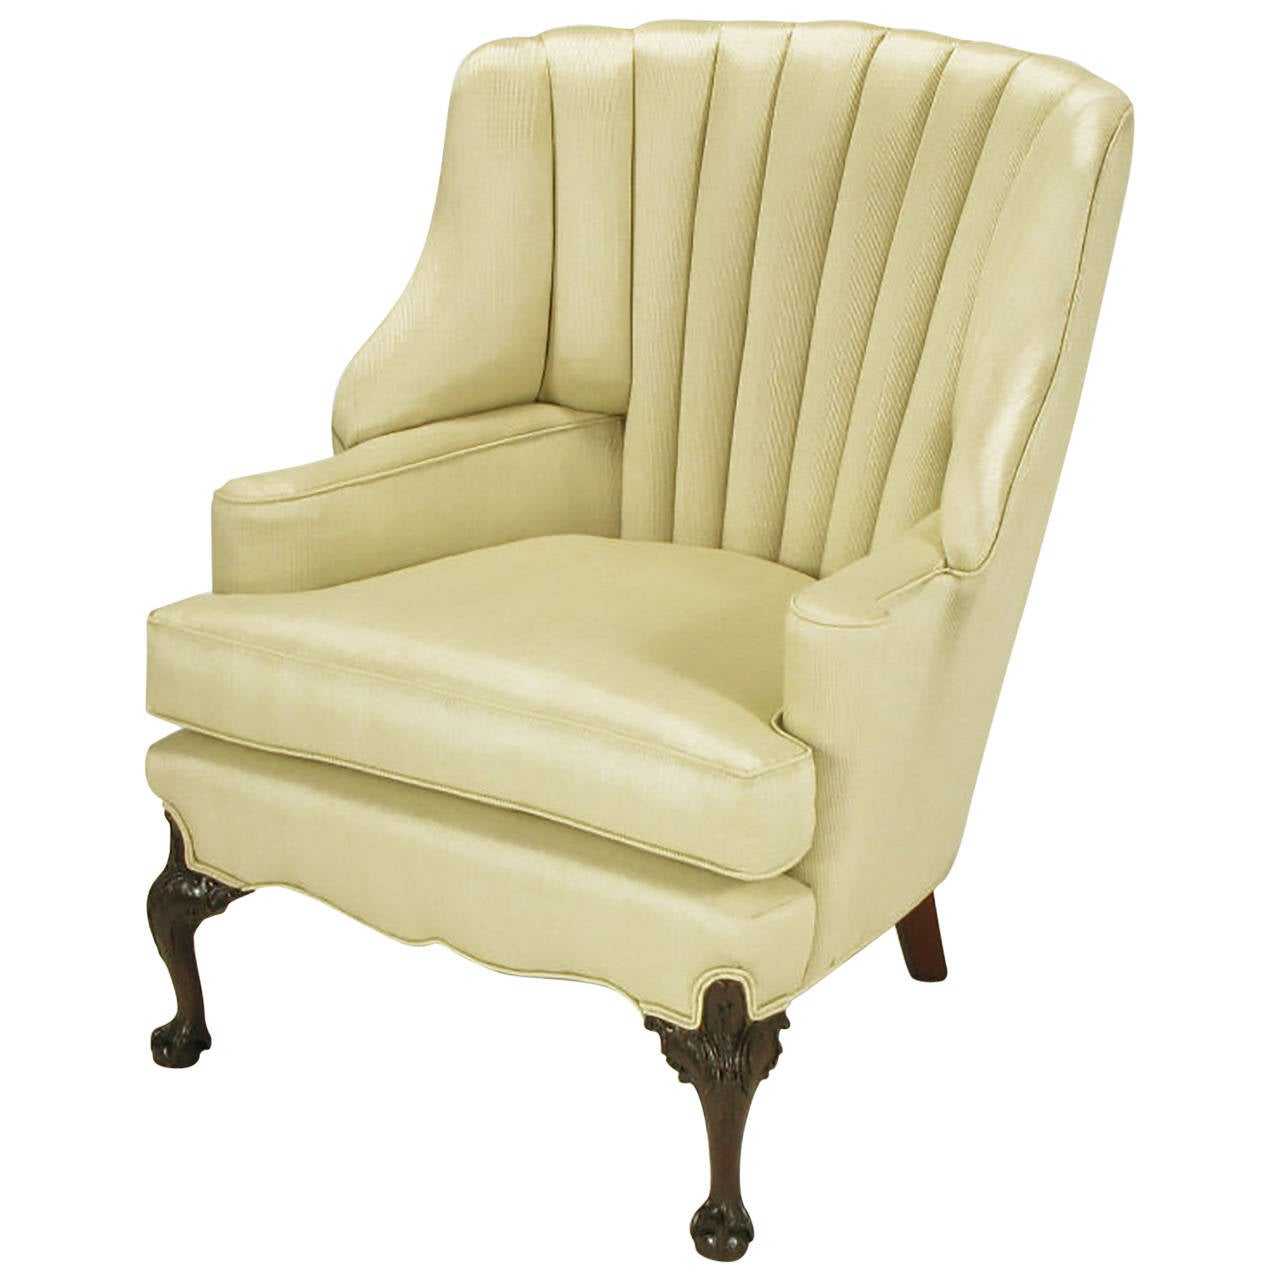 1930s Channel Back Claw Foot Georgian Wingback Chair For Sale At 1stdibs